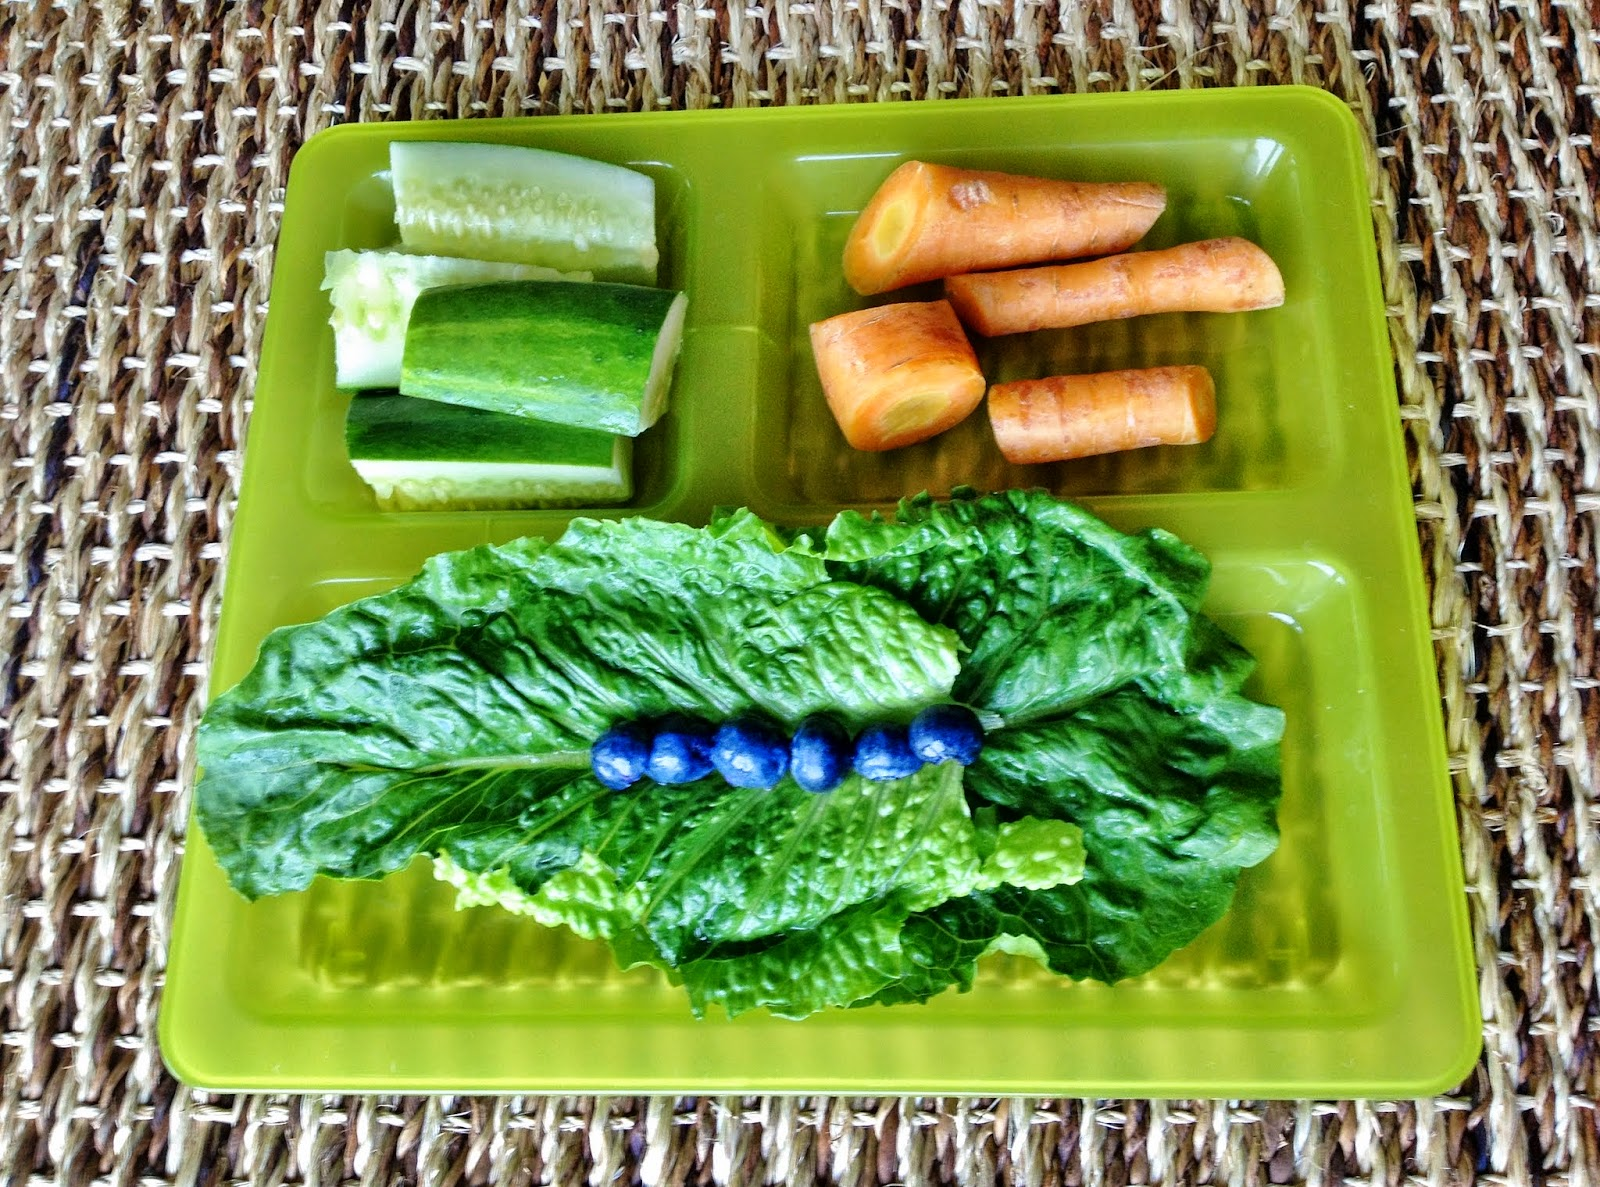 Guinea Pig breakfast: romaine lettuce, blueberries, carrots, cucumber.